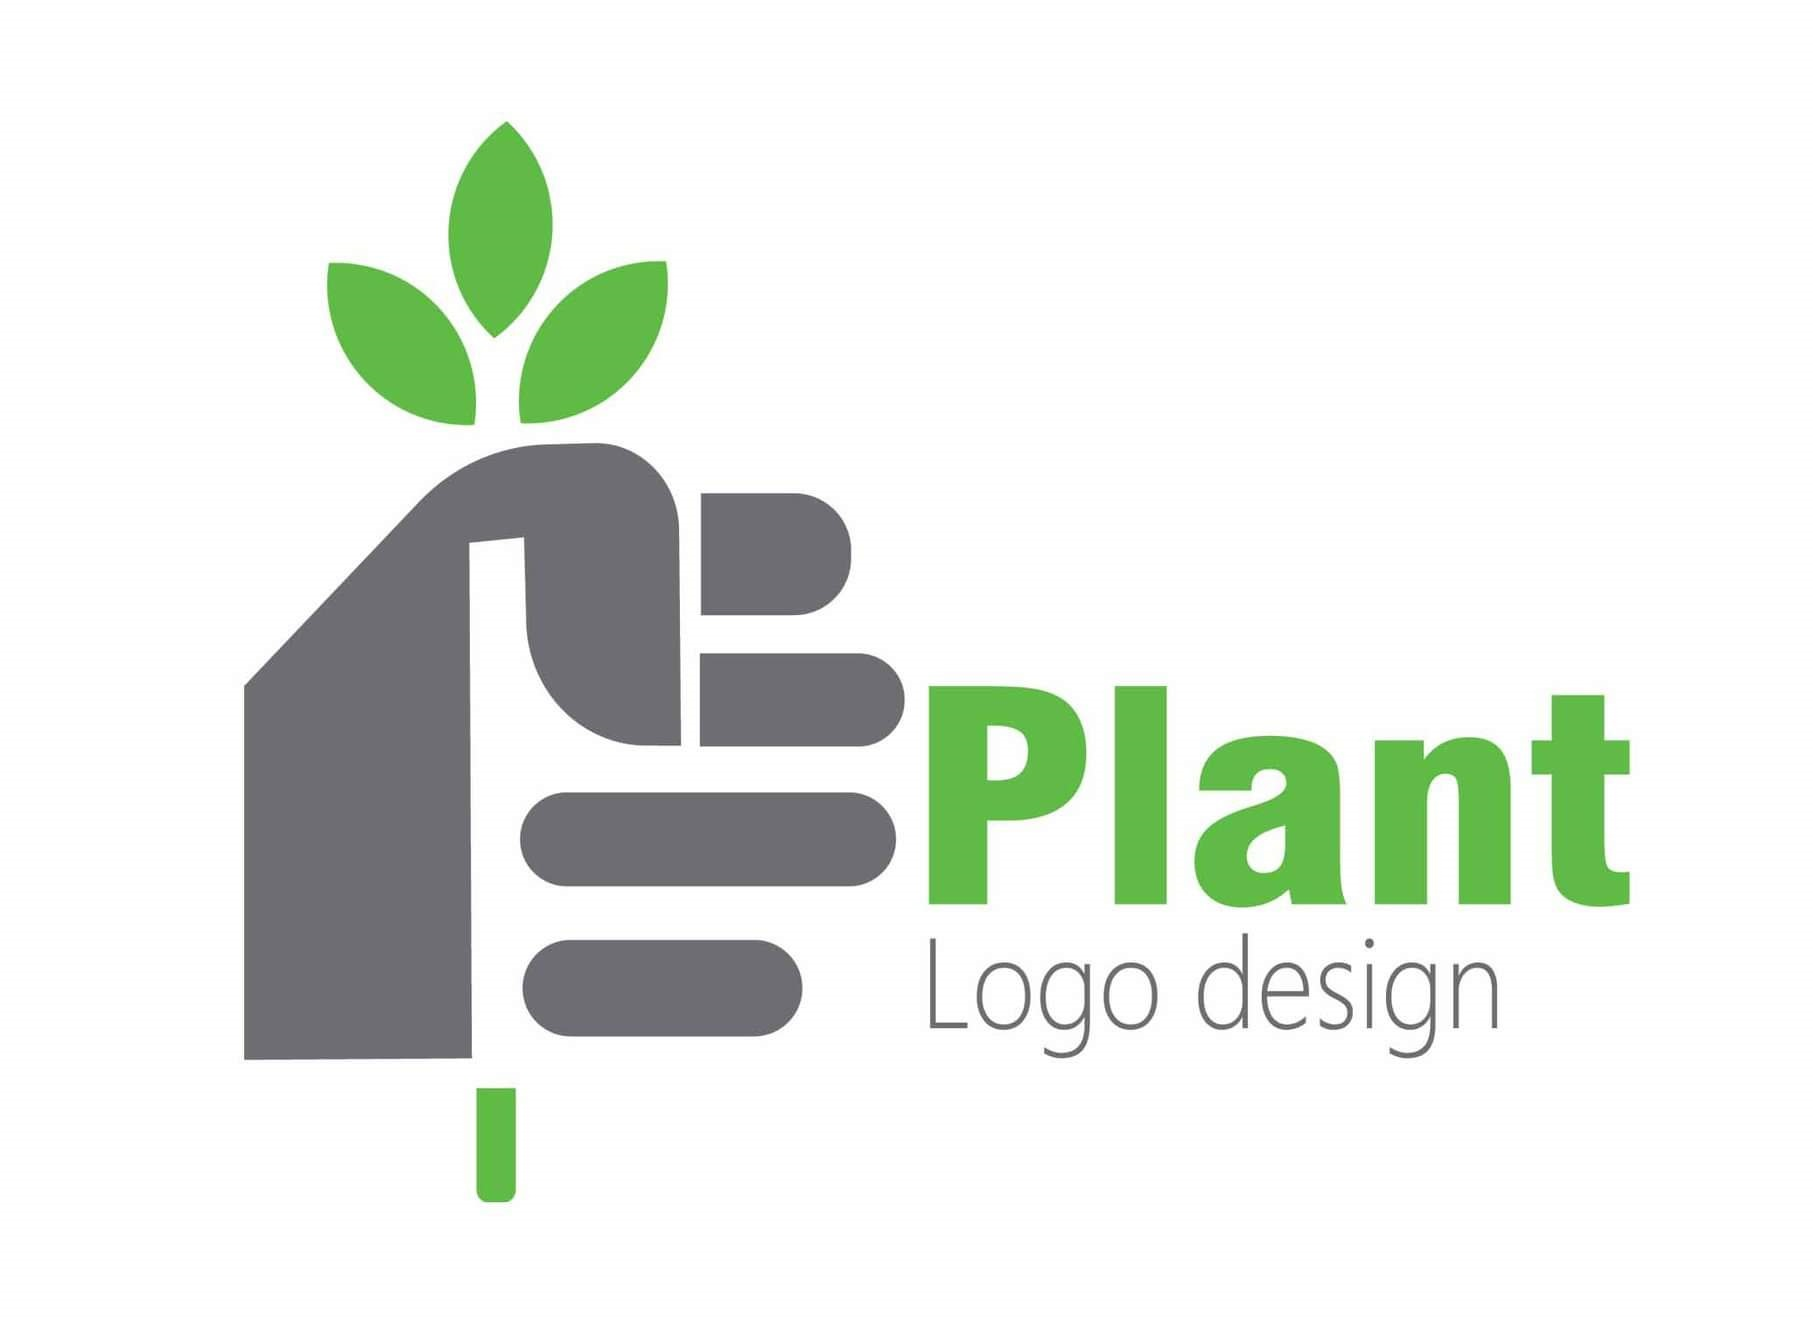 CREATIVE DESIGN ART FOR LOGO DESIGN,  IMAGE EIDING WORK,  GRAPHICS DESIGN, PDF EDITING WORK, TYPING